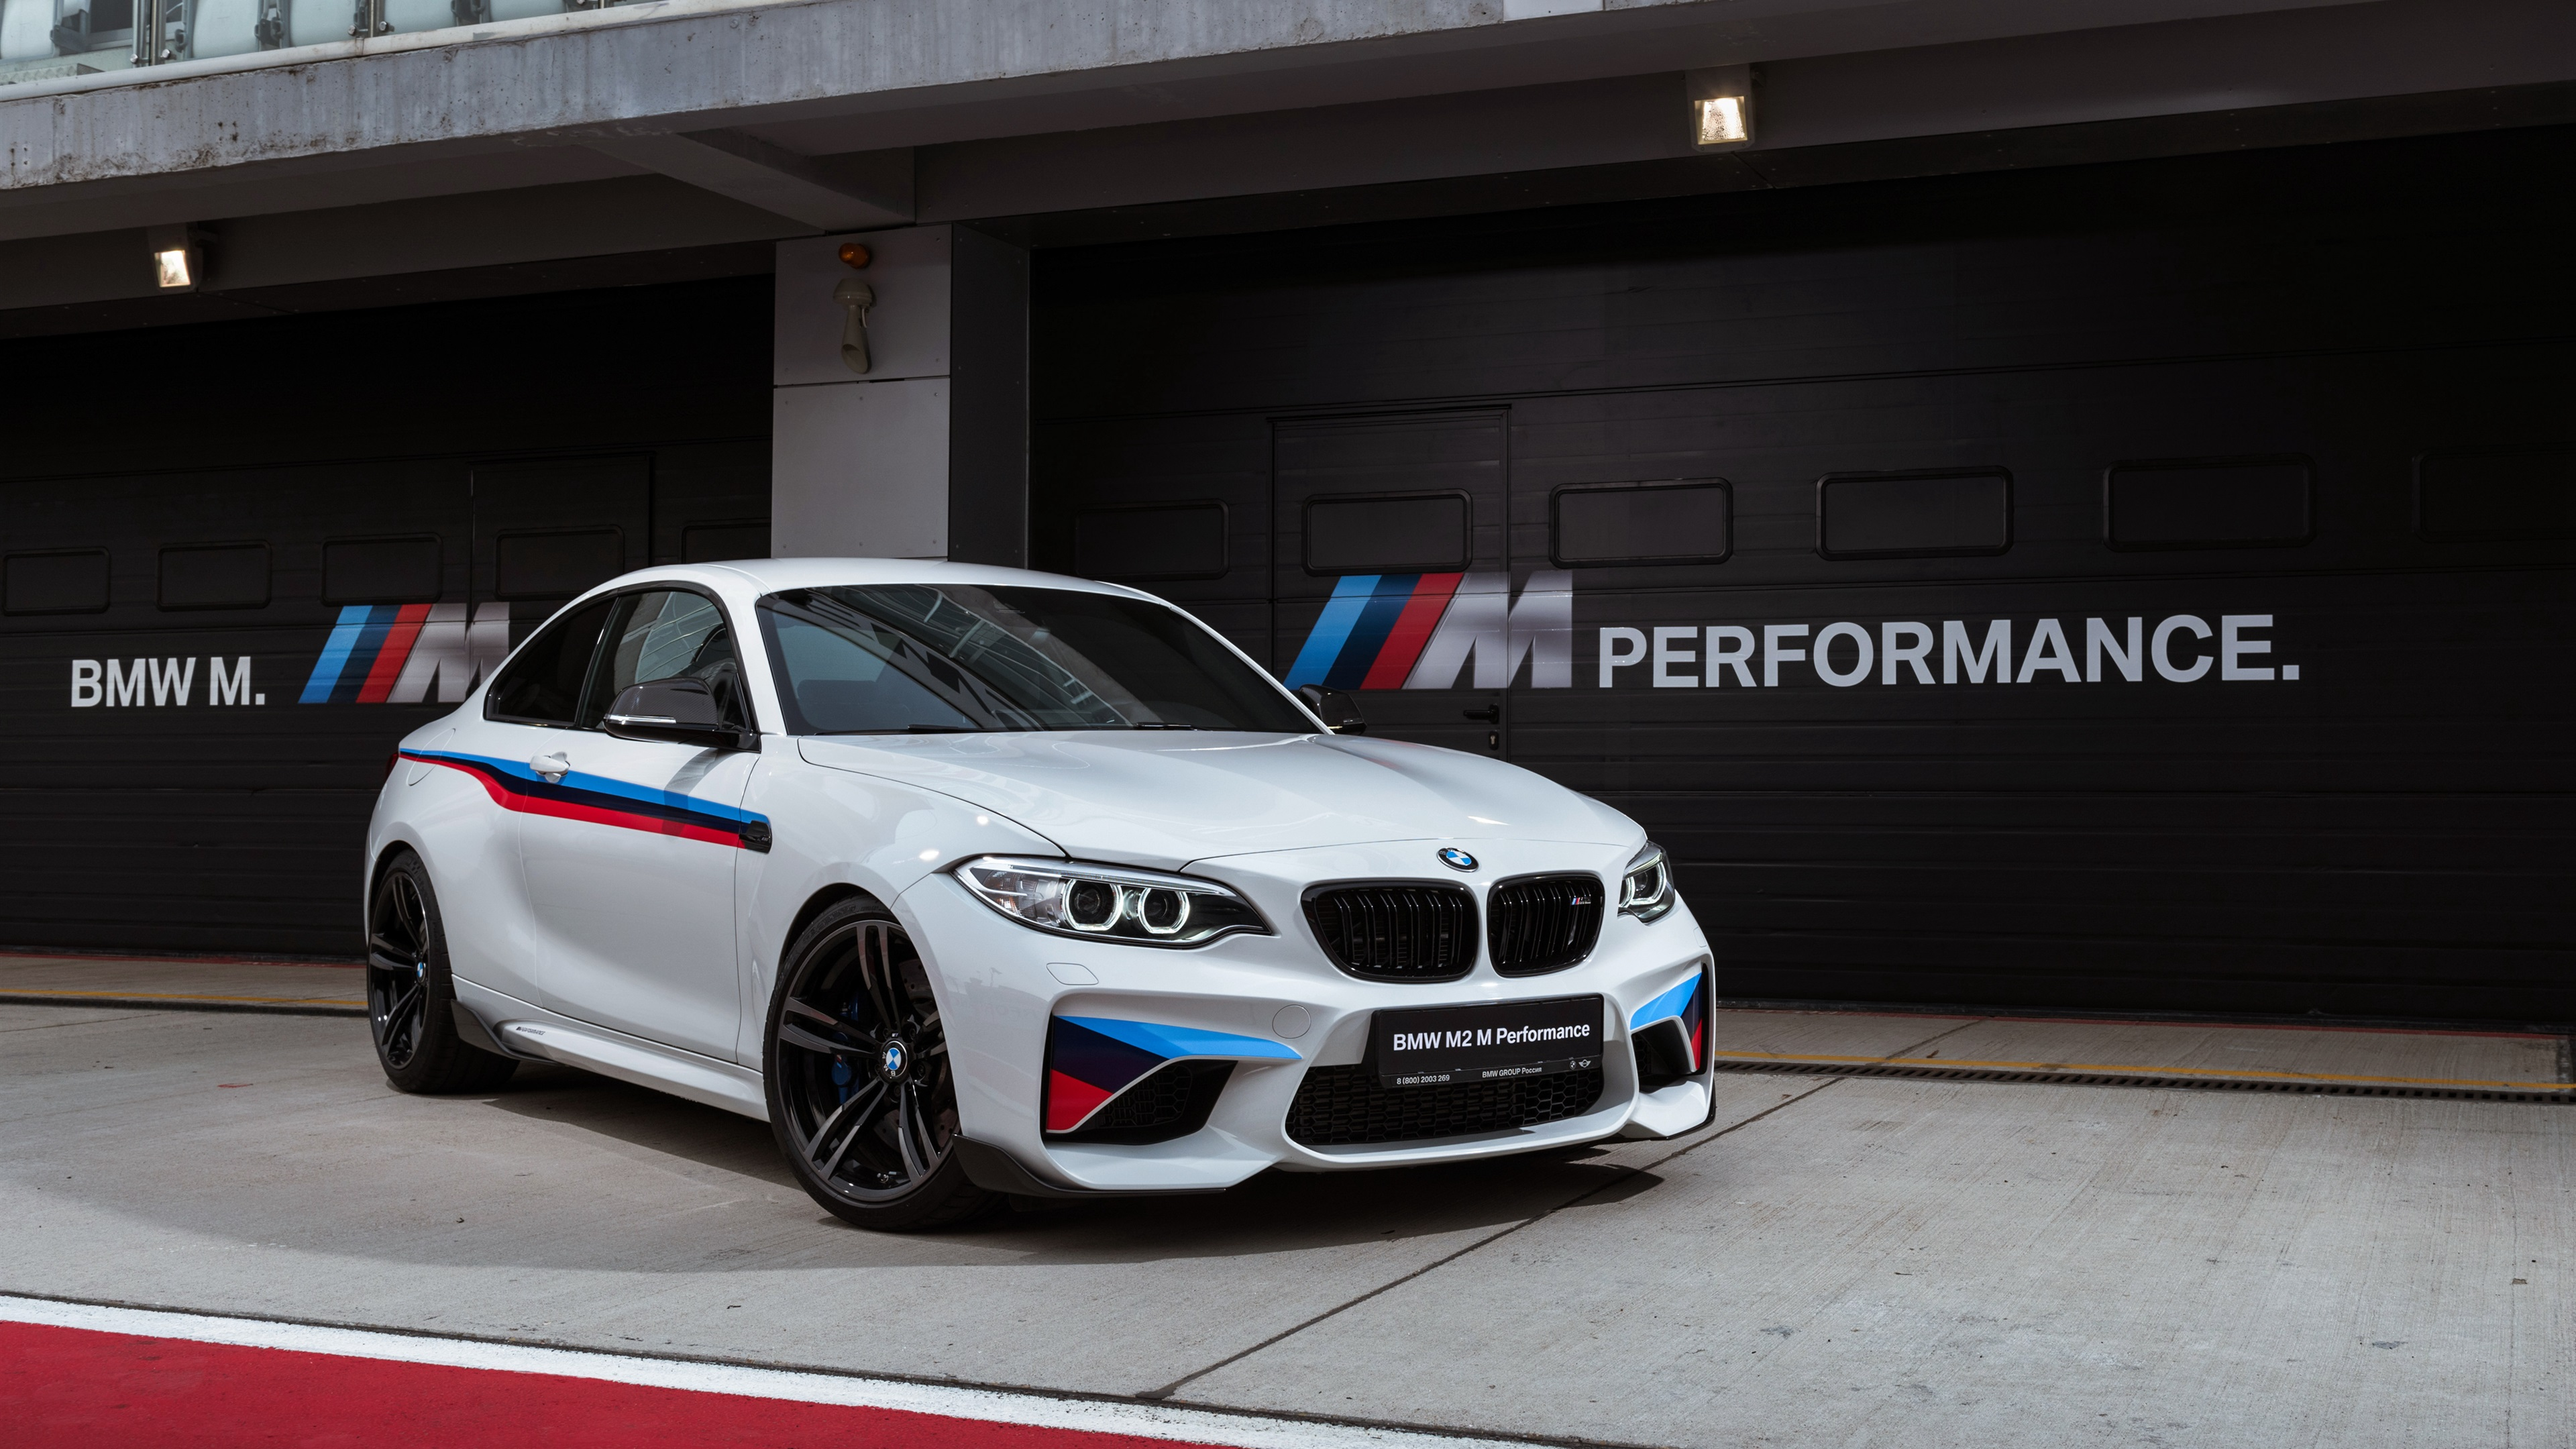 Bmw M Wallpaper Iphone X Wallpaper Bmw M2 F87 White Coupe 3840x2160 Uhd 4k Picture